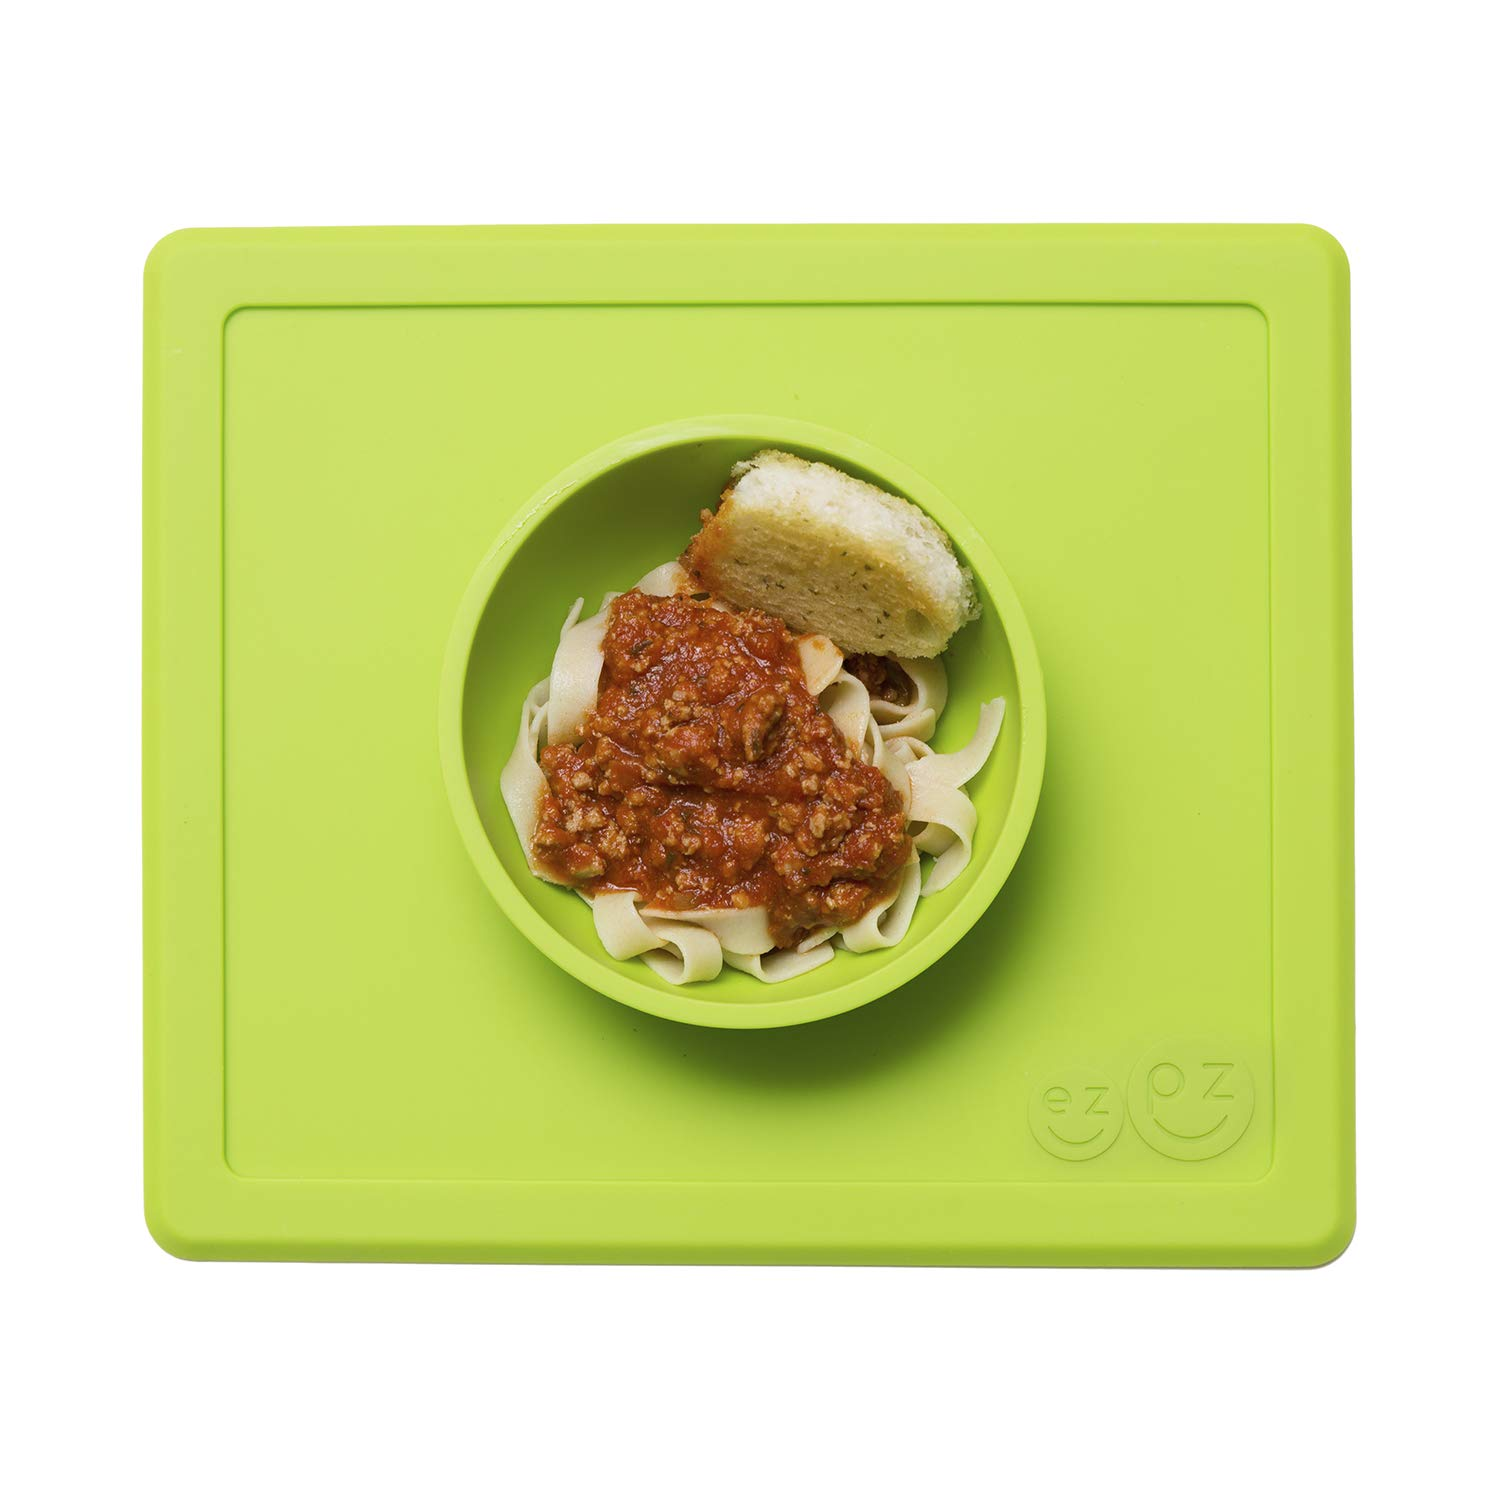 ez pzHappy Bowl (Lime) - 100% Silicone Suction Bowl with Built-in Placemat for Toddlers + Preschoolers - Dishwasher Safe (LMHBG001)